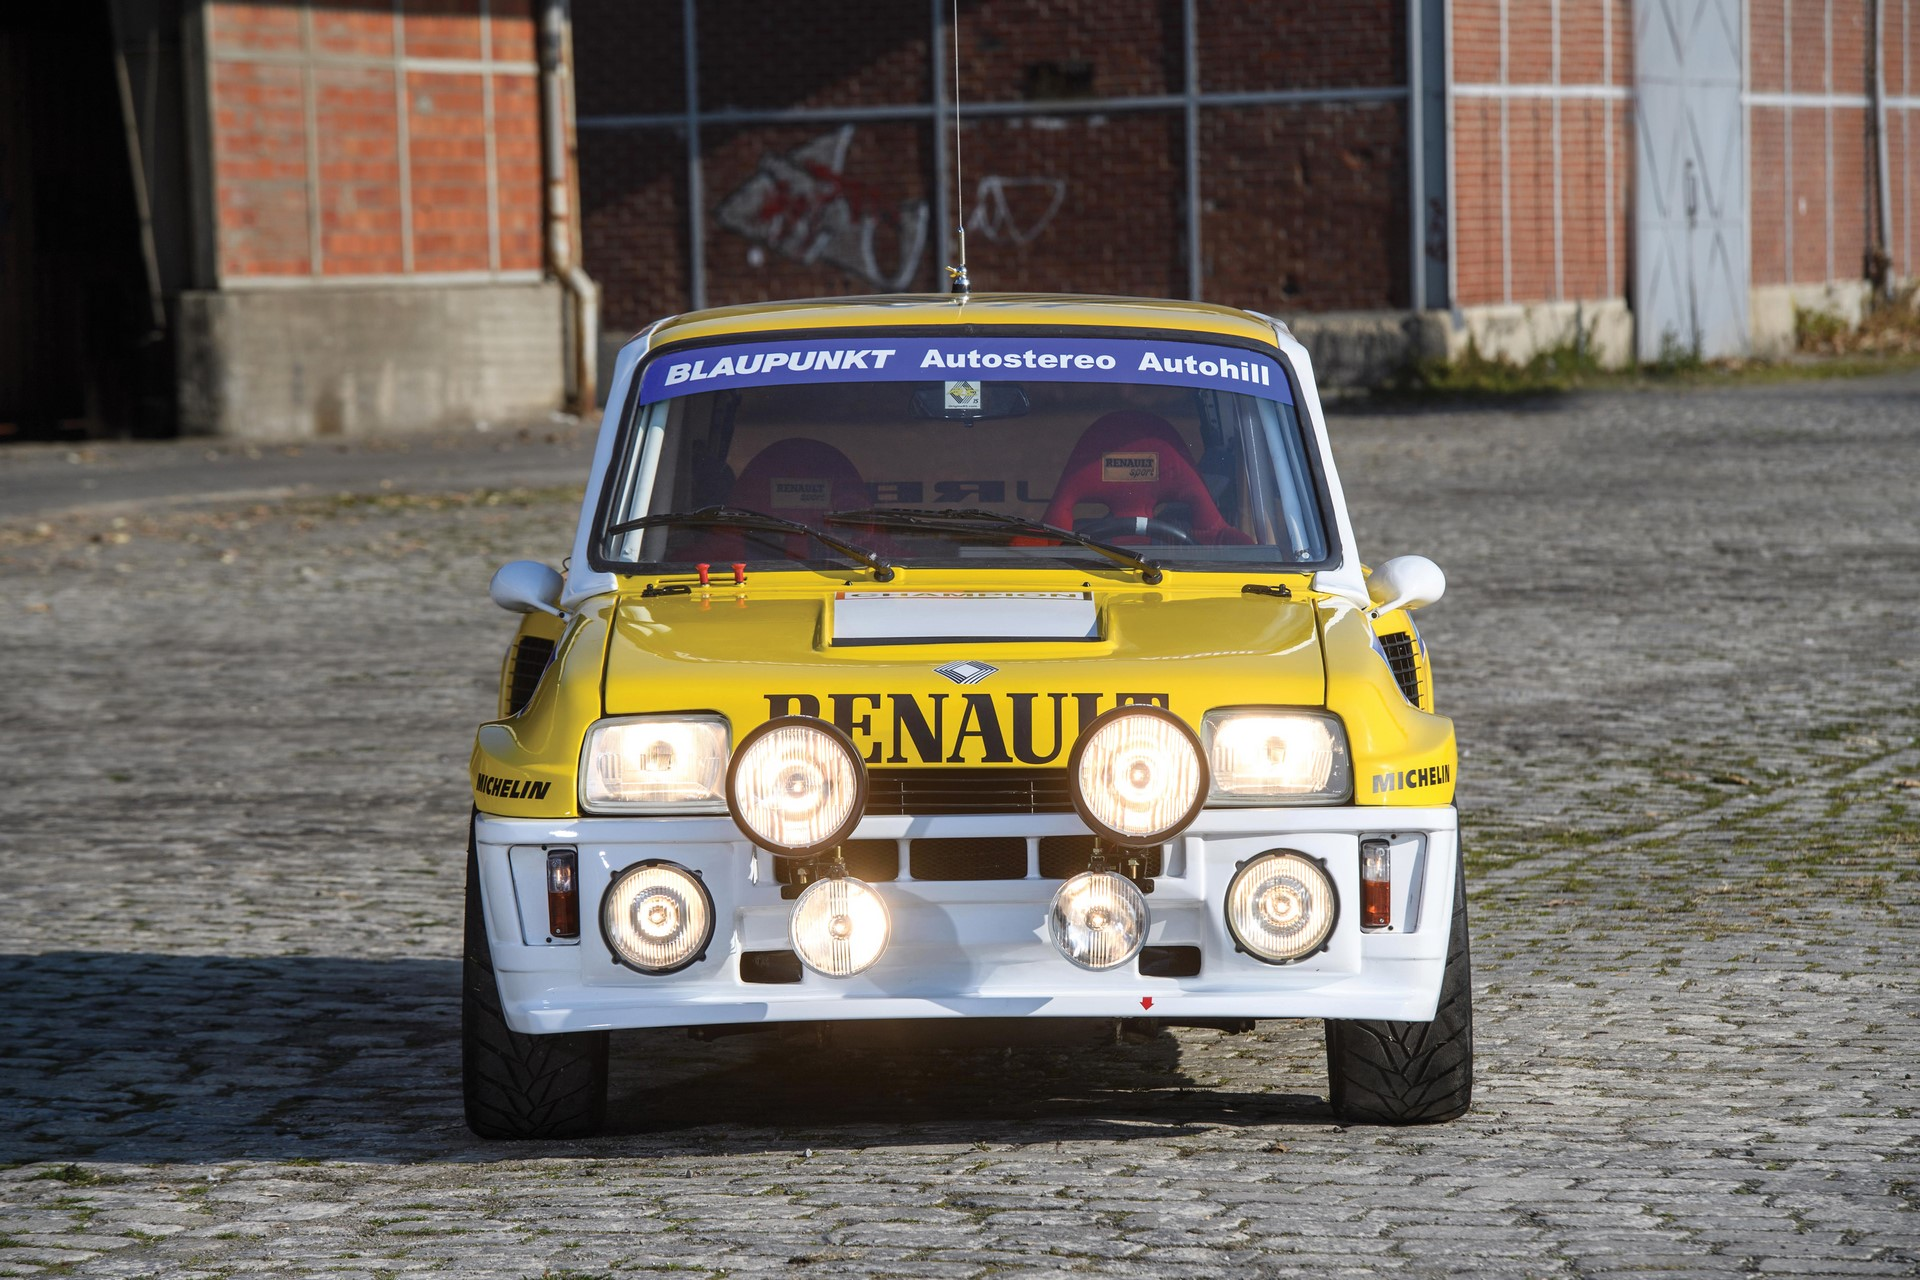 Renault 5 Turbo Tour de Corse (6)